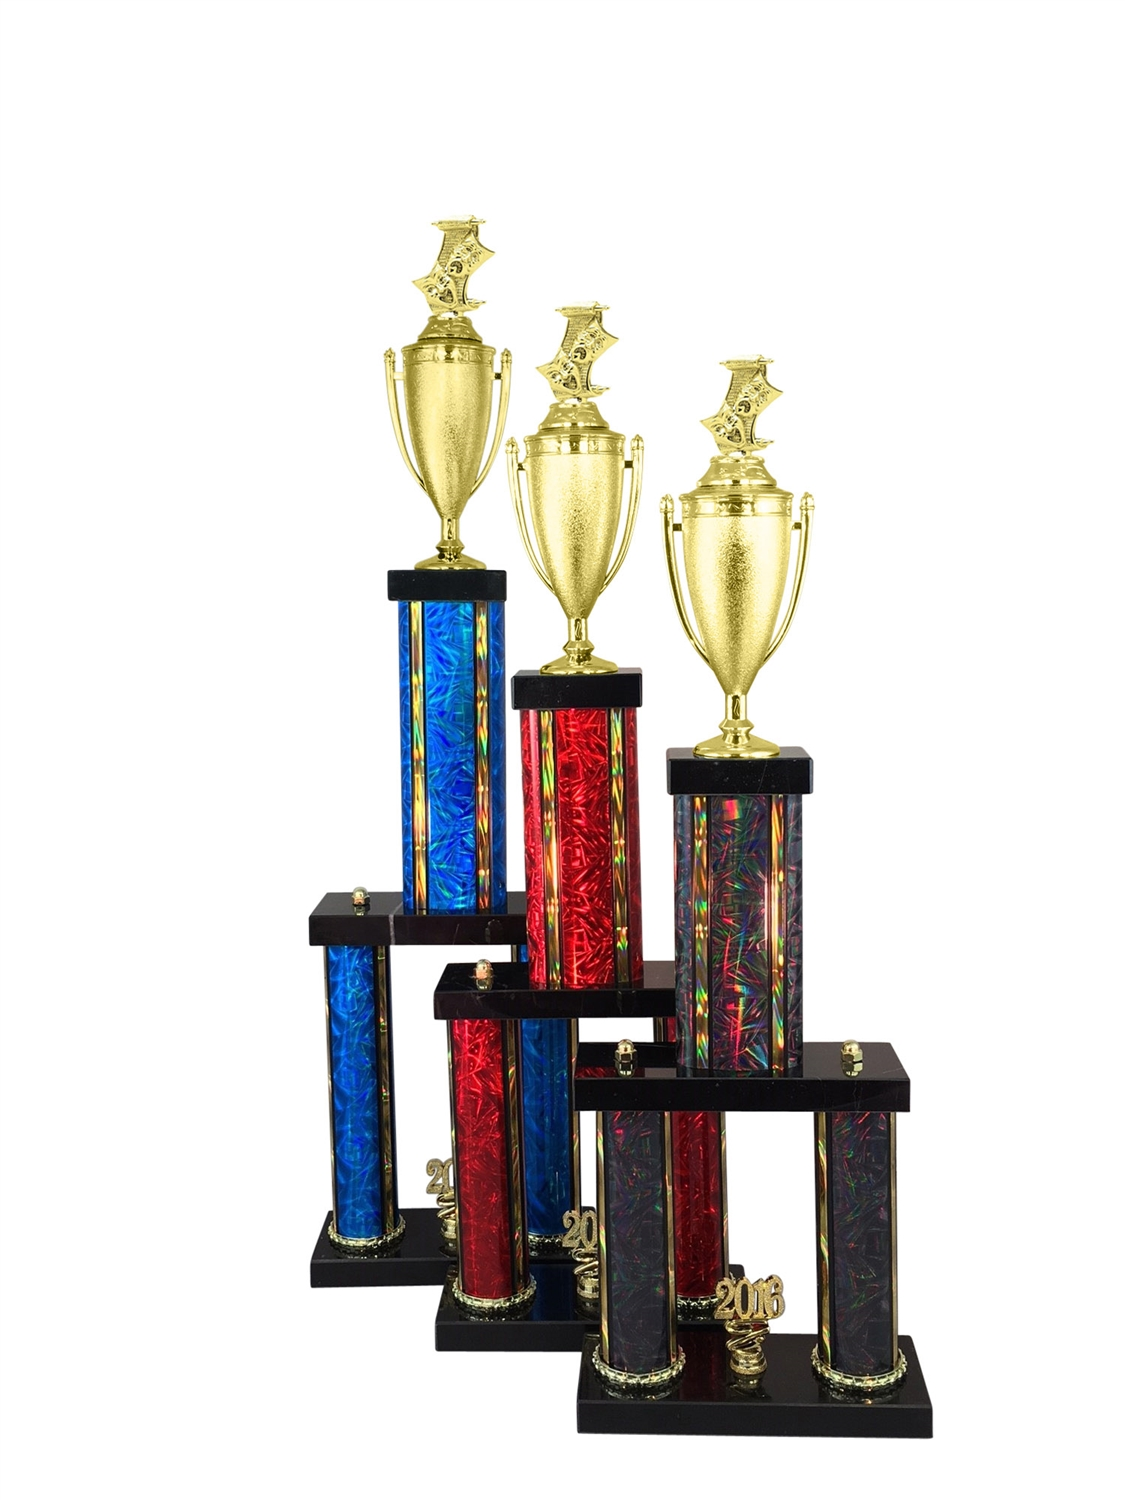 Drama Trophy Available in 11 Color & 6 Size Options